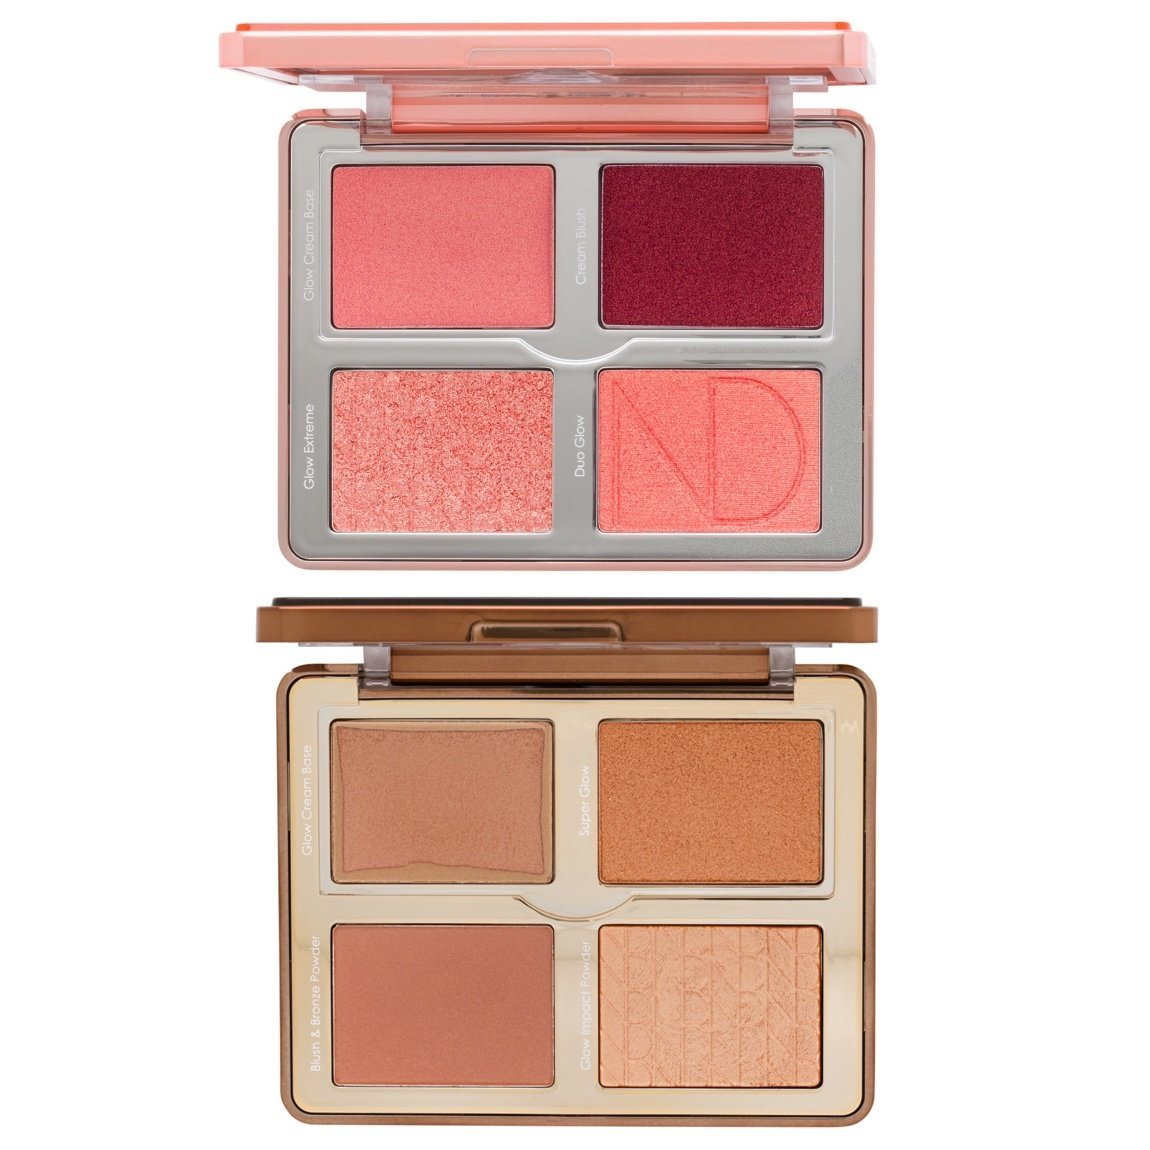 Natasha Denona Bloom Blush & Glow Palette + Tan Bronze & Glow Palette Bundle product swatch.